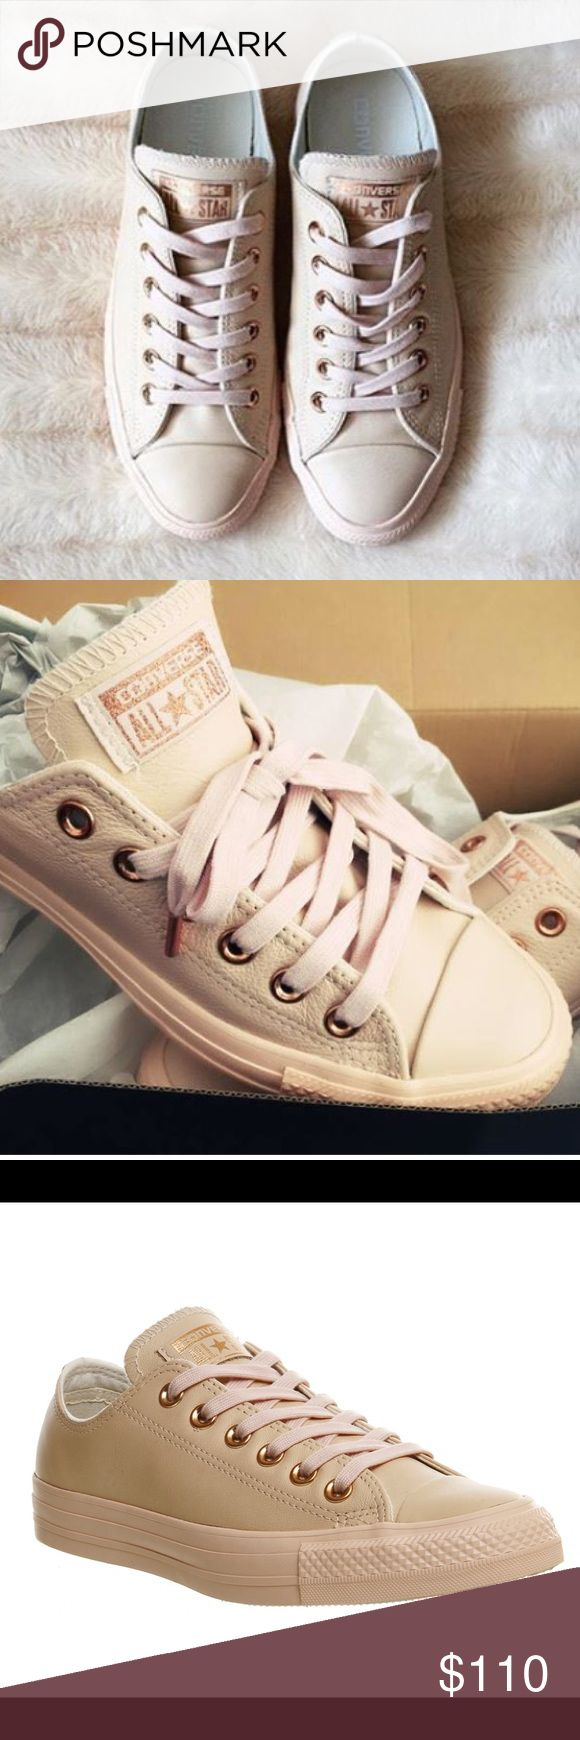 NIB Rose Gold LEATHER Converse Nude Collection NOT AVAILABLE IN THE US and shipping from Europe takes 2 weeks! I paid 80 euros including shipping for these and ordered the wrong size and it costs 20 euros to ship them back. They're absolutely stunning and the leather is incredibly soft. These are a US size 10. Converse Shoes Sneakers